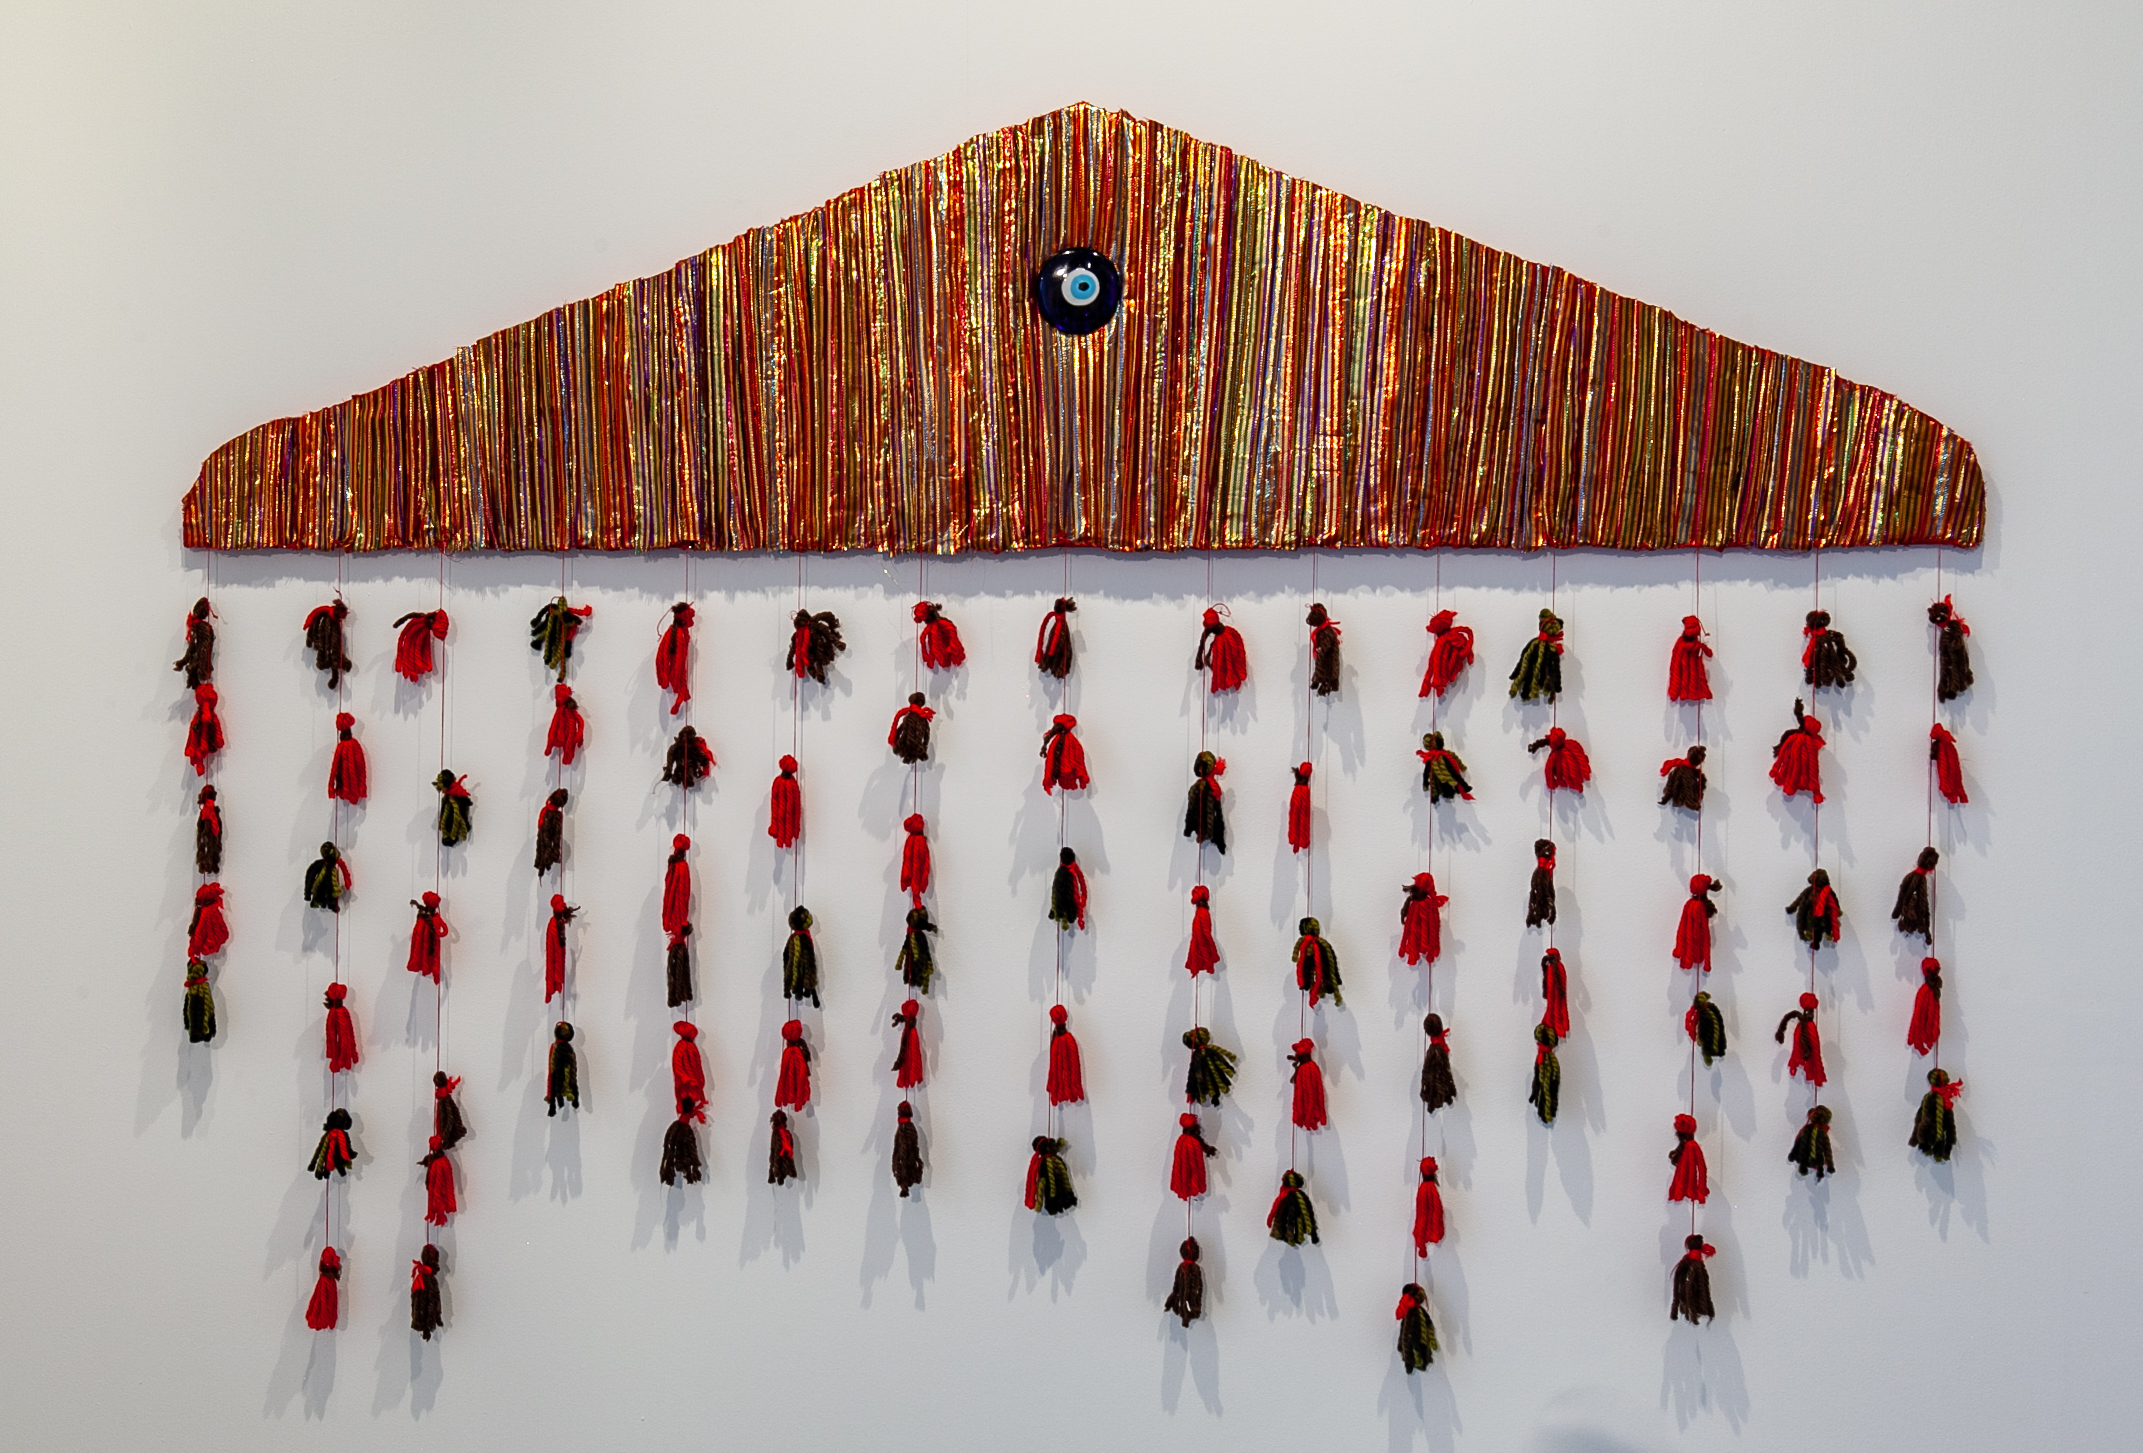 "Nuveen Barwari (Nashville, TN)   House Wife , 2018  Medium: Fabric, acrylic paint, glass, and yarn on wood  Dimensions: 58x83 inches  ""This piece was inspired by the Kurdish women presiding in my life. For years, I have watched members of my family create traditional pieces with fabrics such as Kurdish dresses and tassels attached to tapestries inside of houses. Through this piece my aim was to protect and honor their craft, ideology and identity. In most Kurdish homes you will find an 'evil eye' as a symbol of protection."" – Nuveen Barwari"